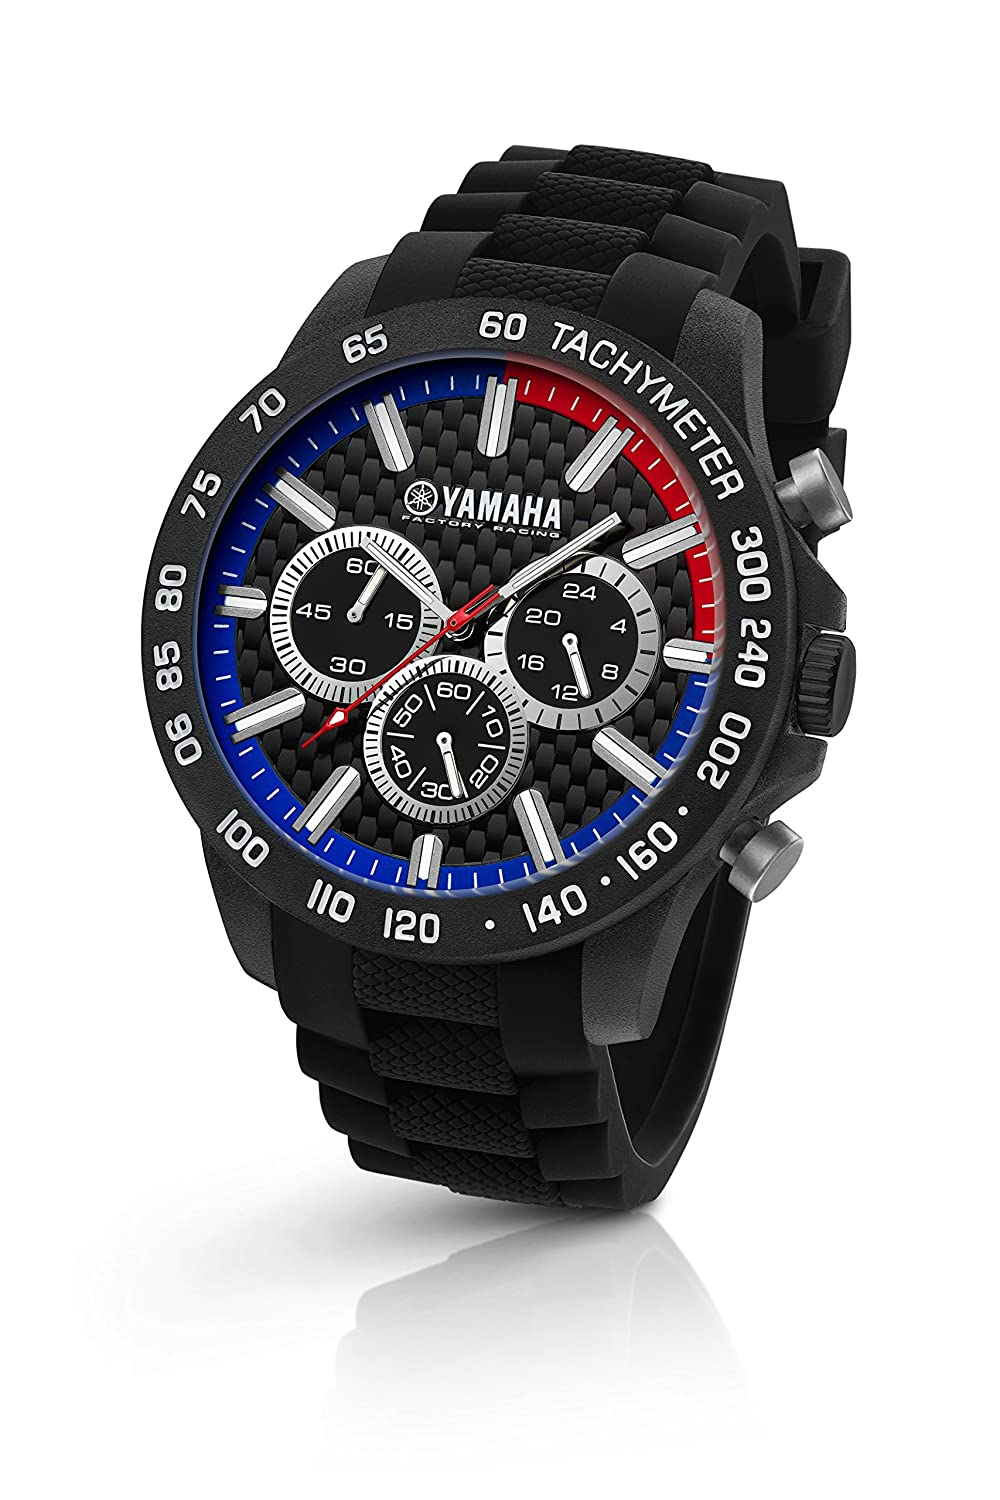 Vr46 By Tw Steel Herrenuhr Analog Quartz Silikon Schwarz Y112